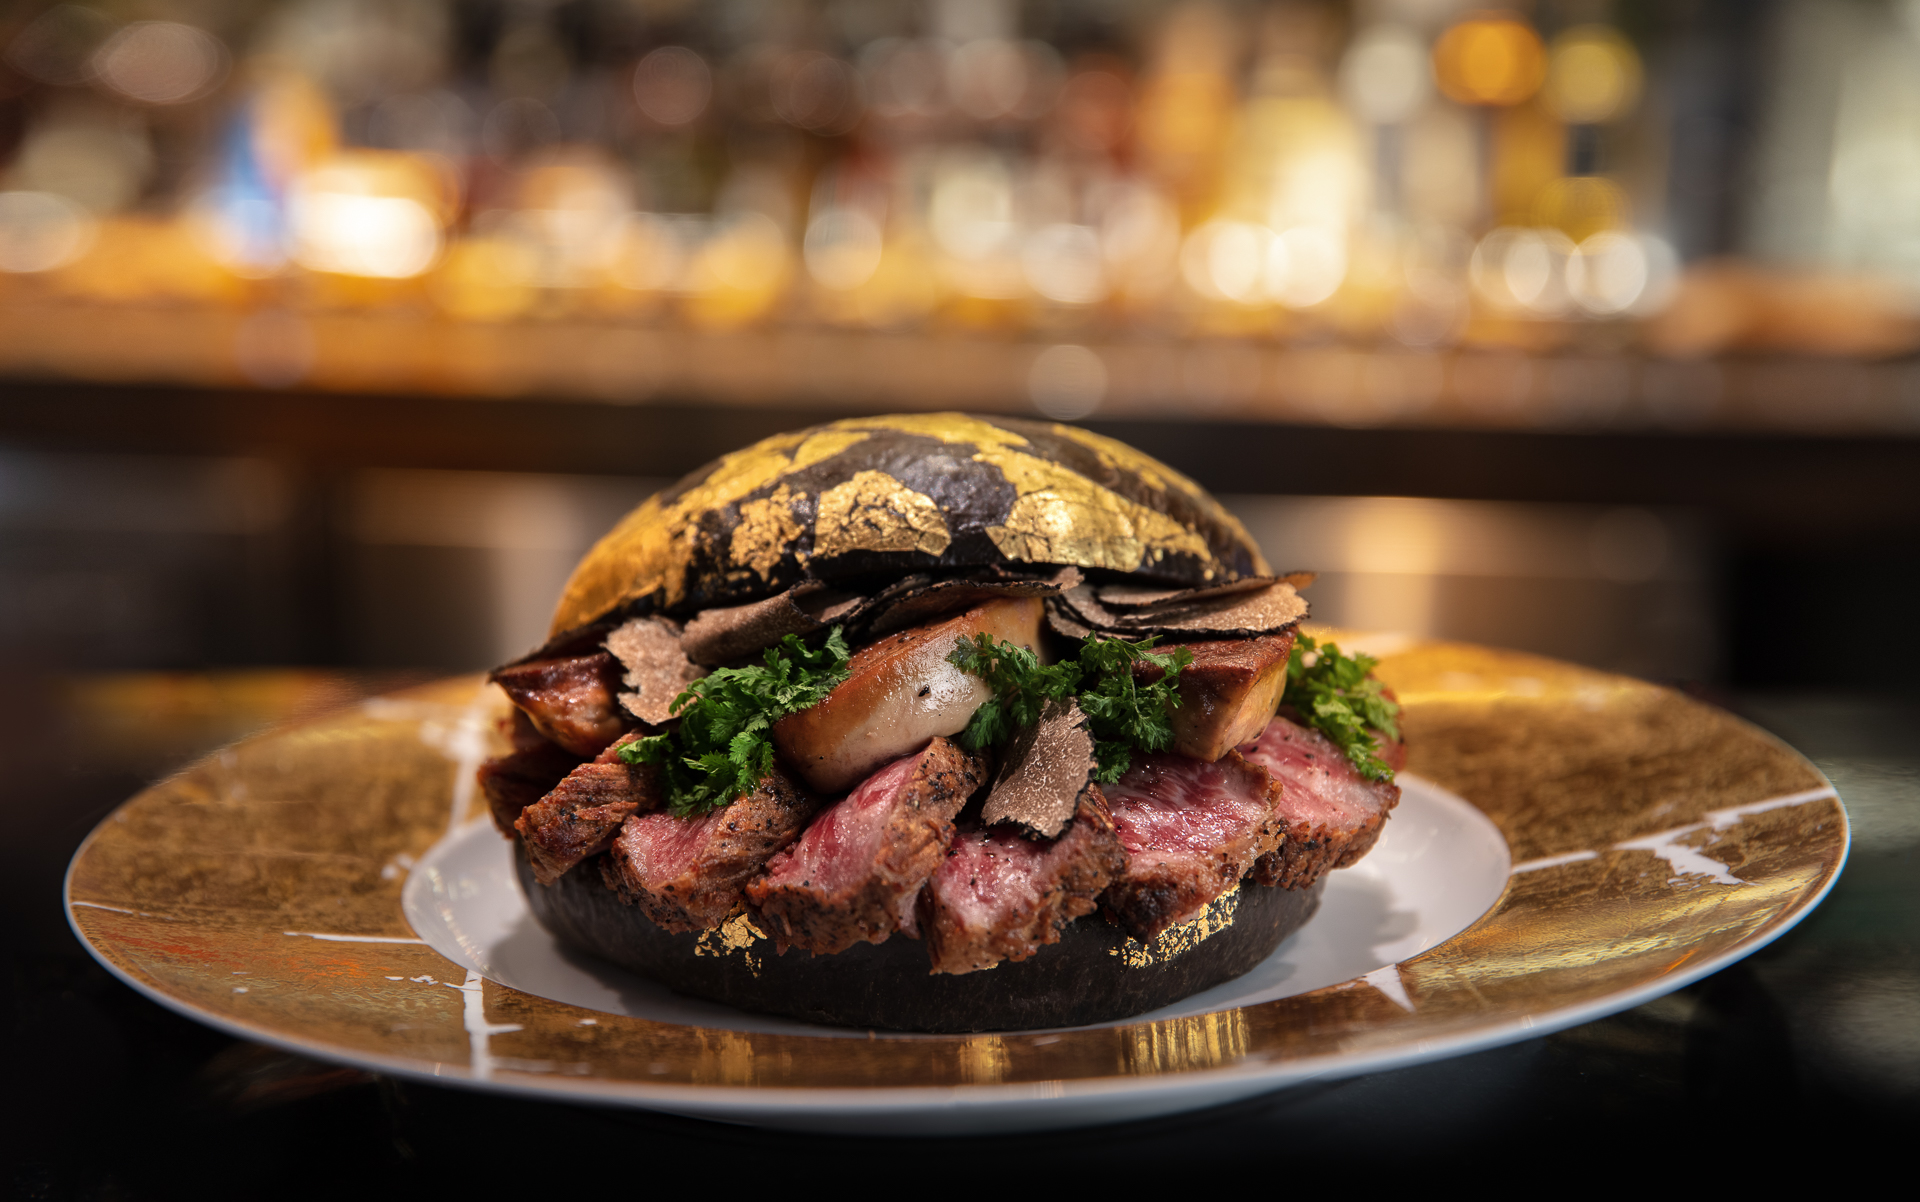 This Absurd $1,600 Burger Will Absolutely Make You Want to Eat the Rich